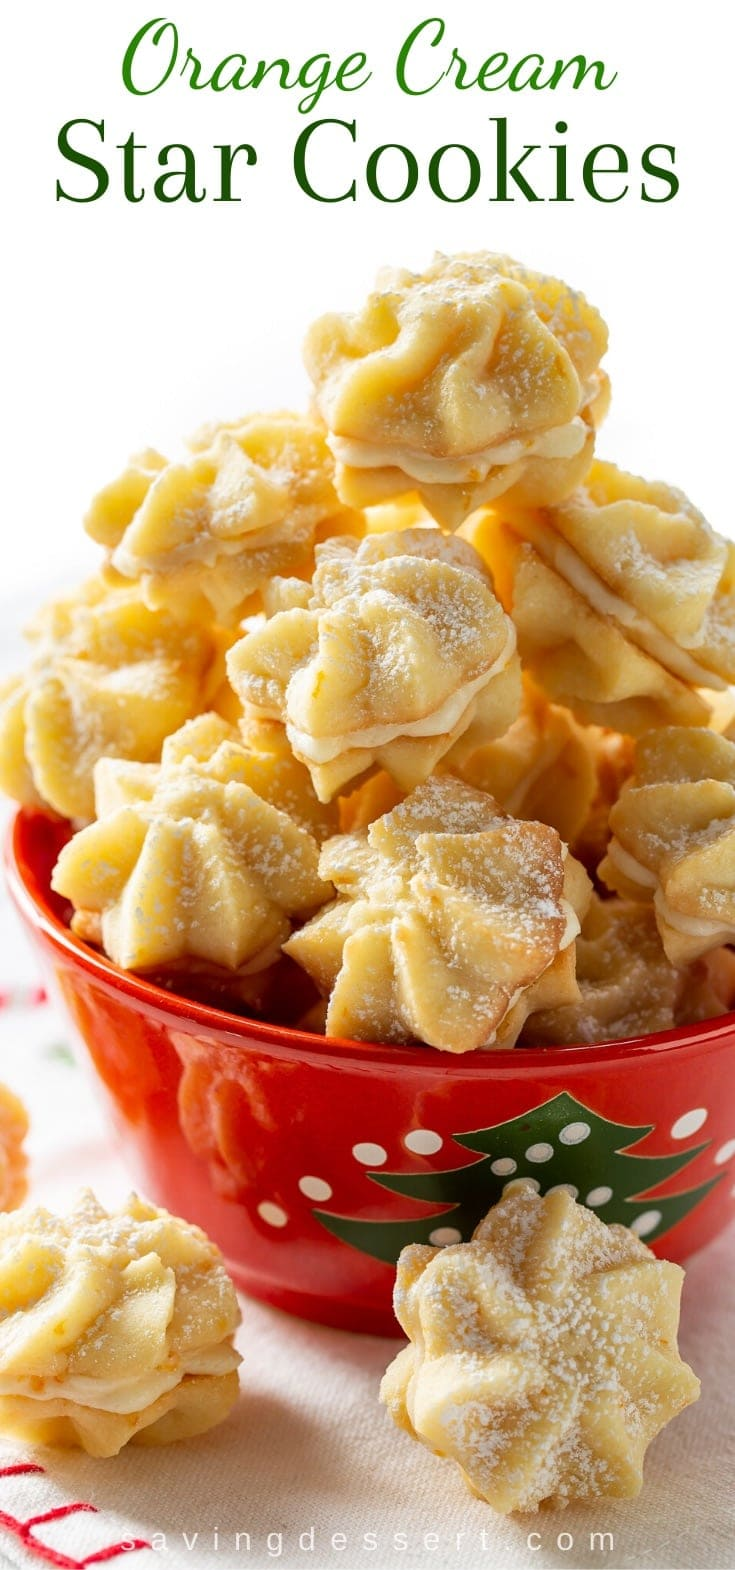 A closeup view of orange cream star cookies in a holiday bowl